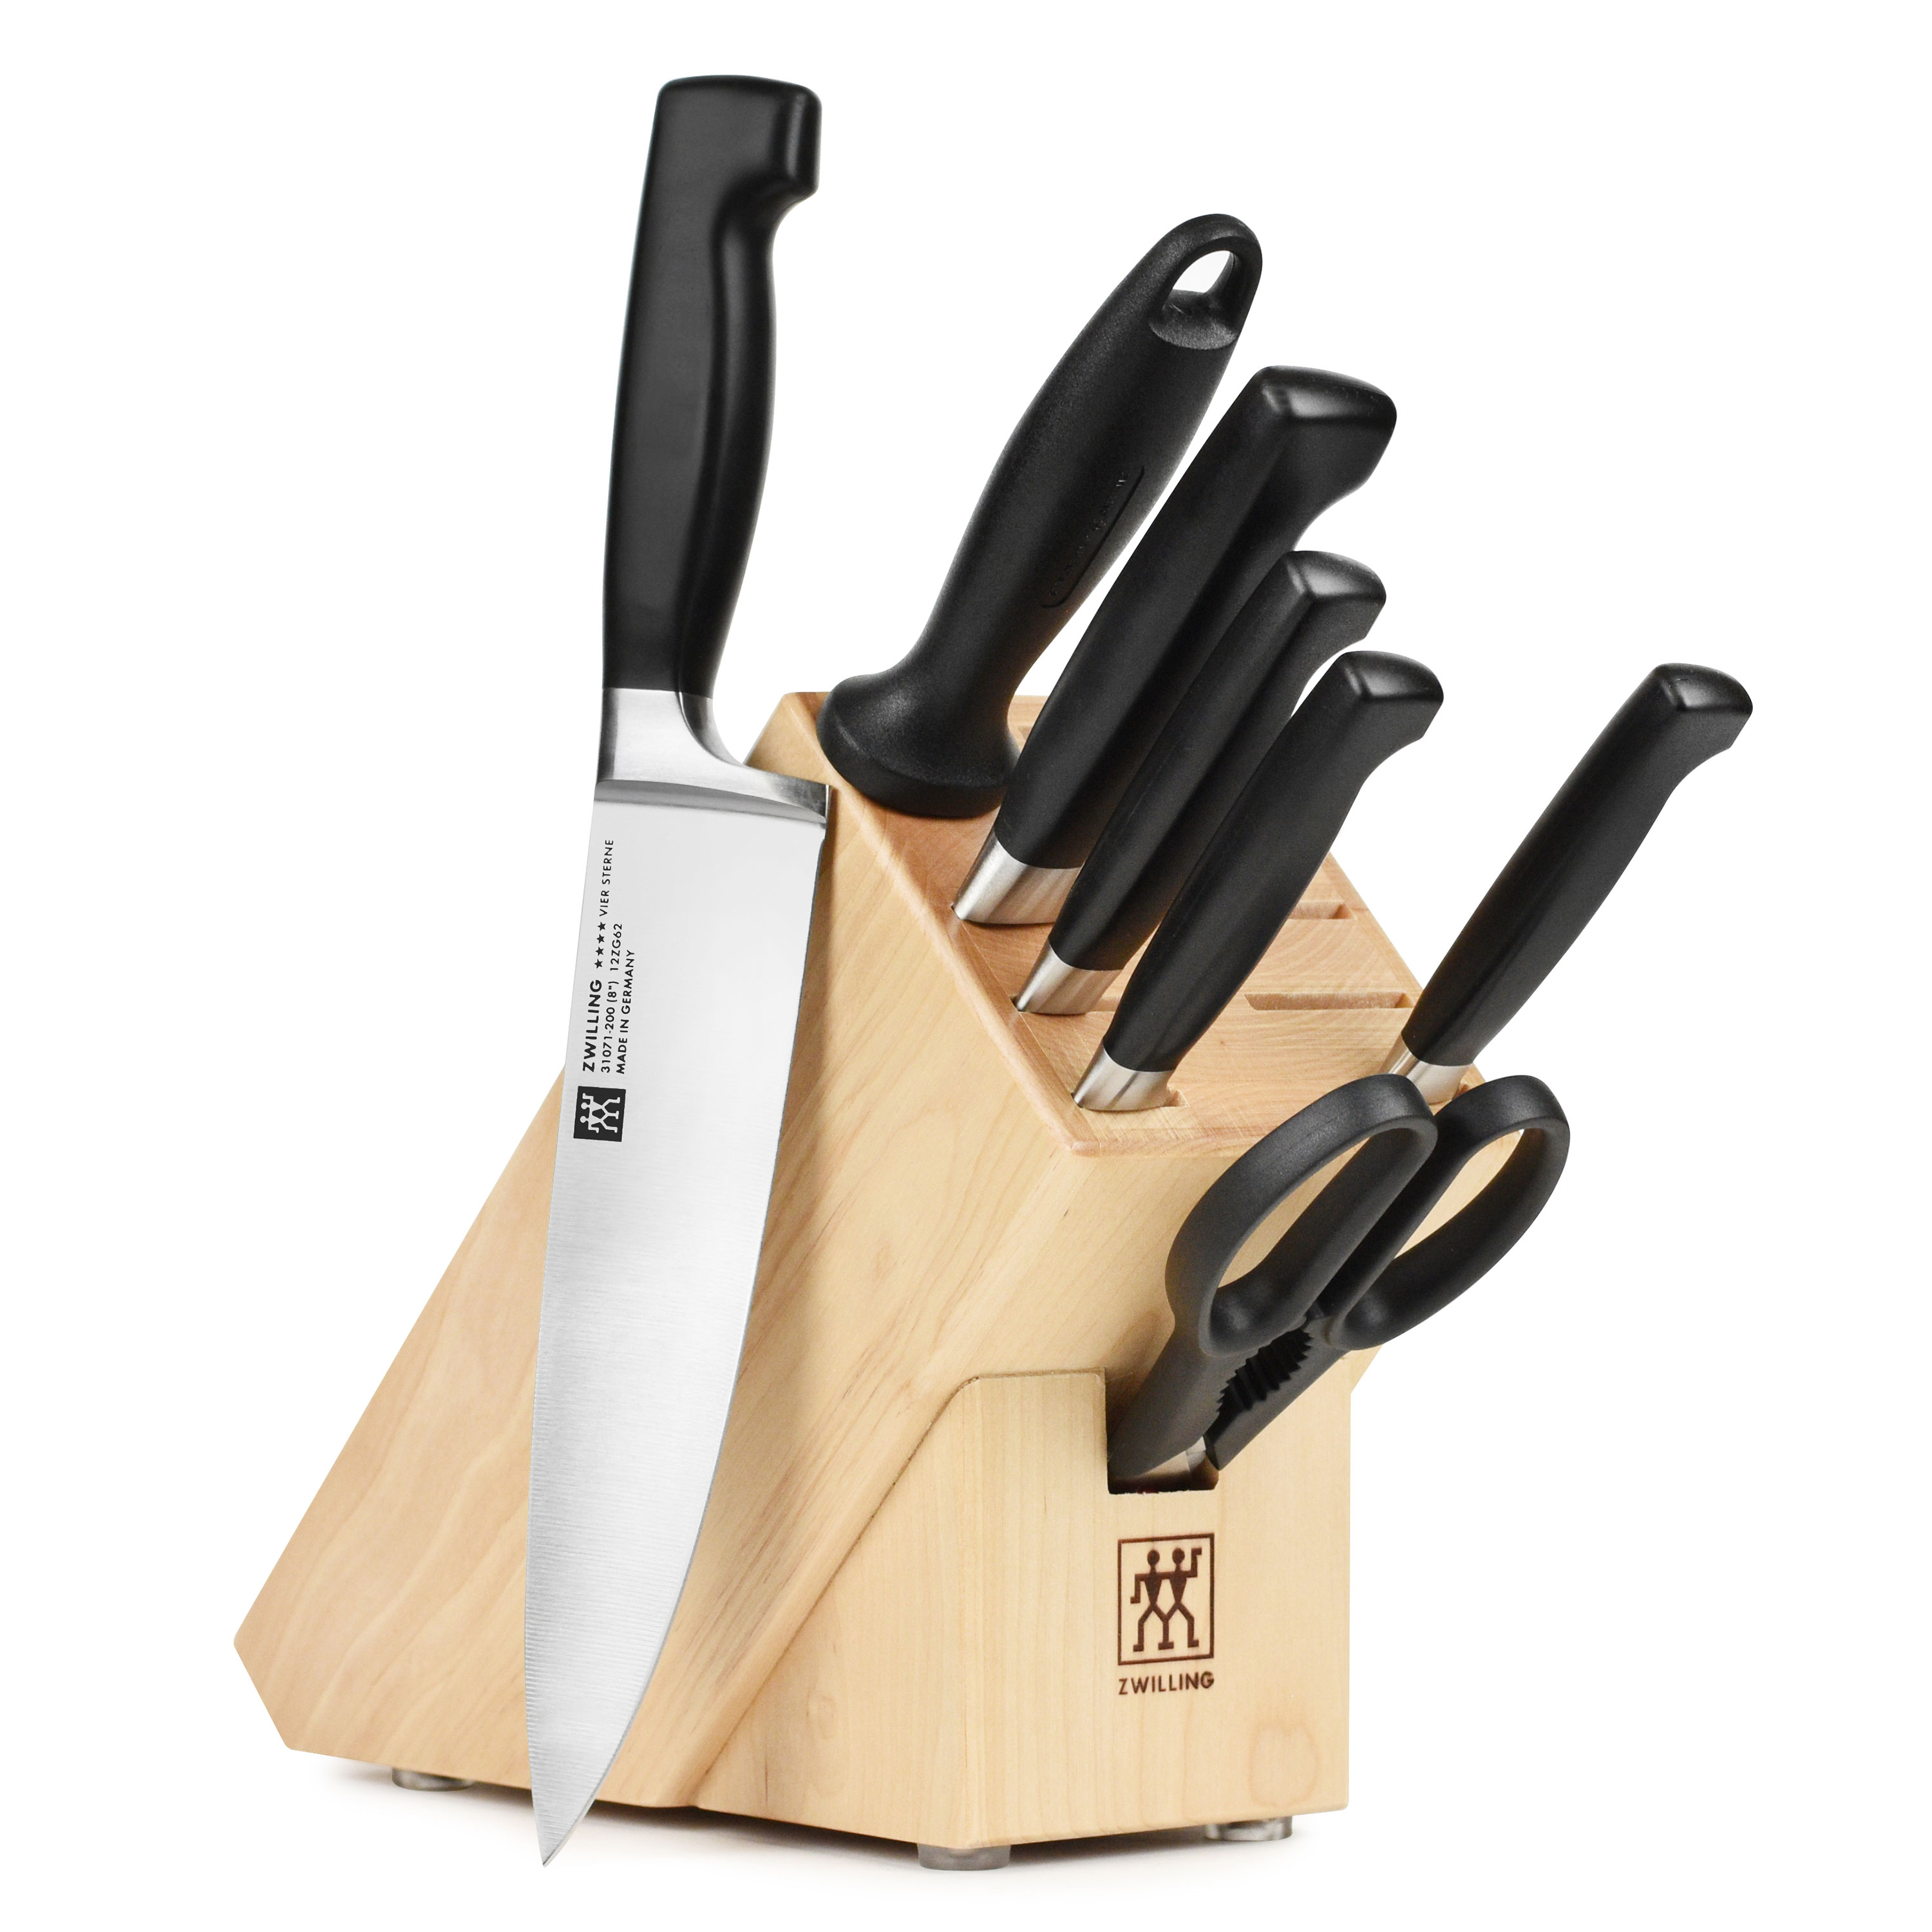 Zwilling Four Star Set 8 Piece With Knife Block By J A